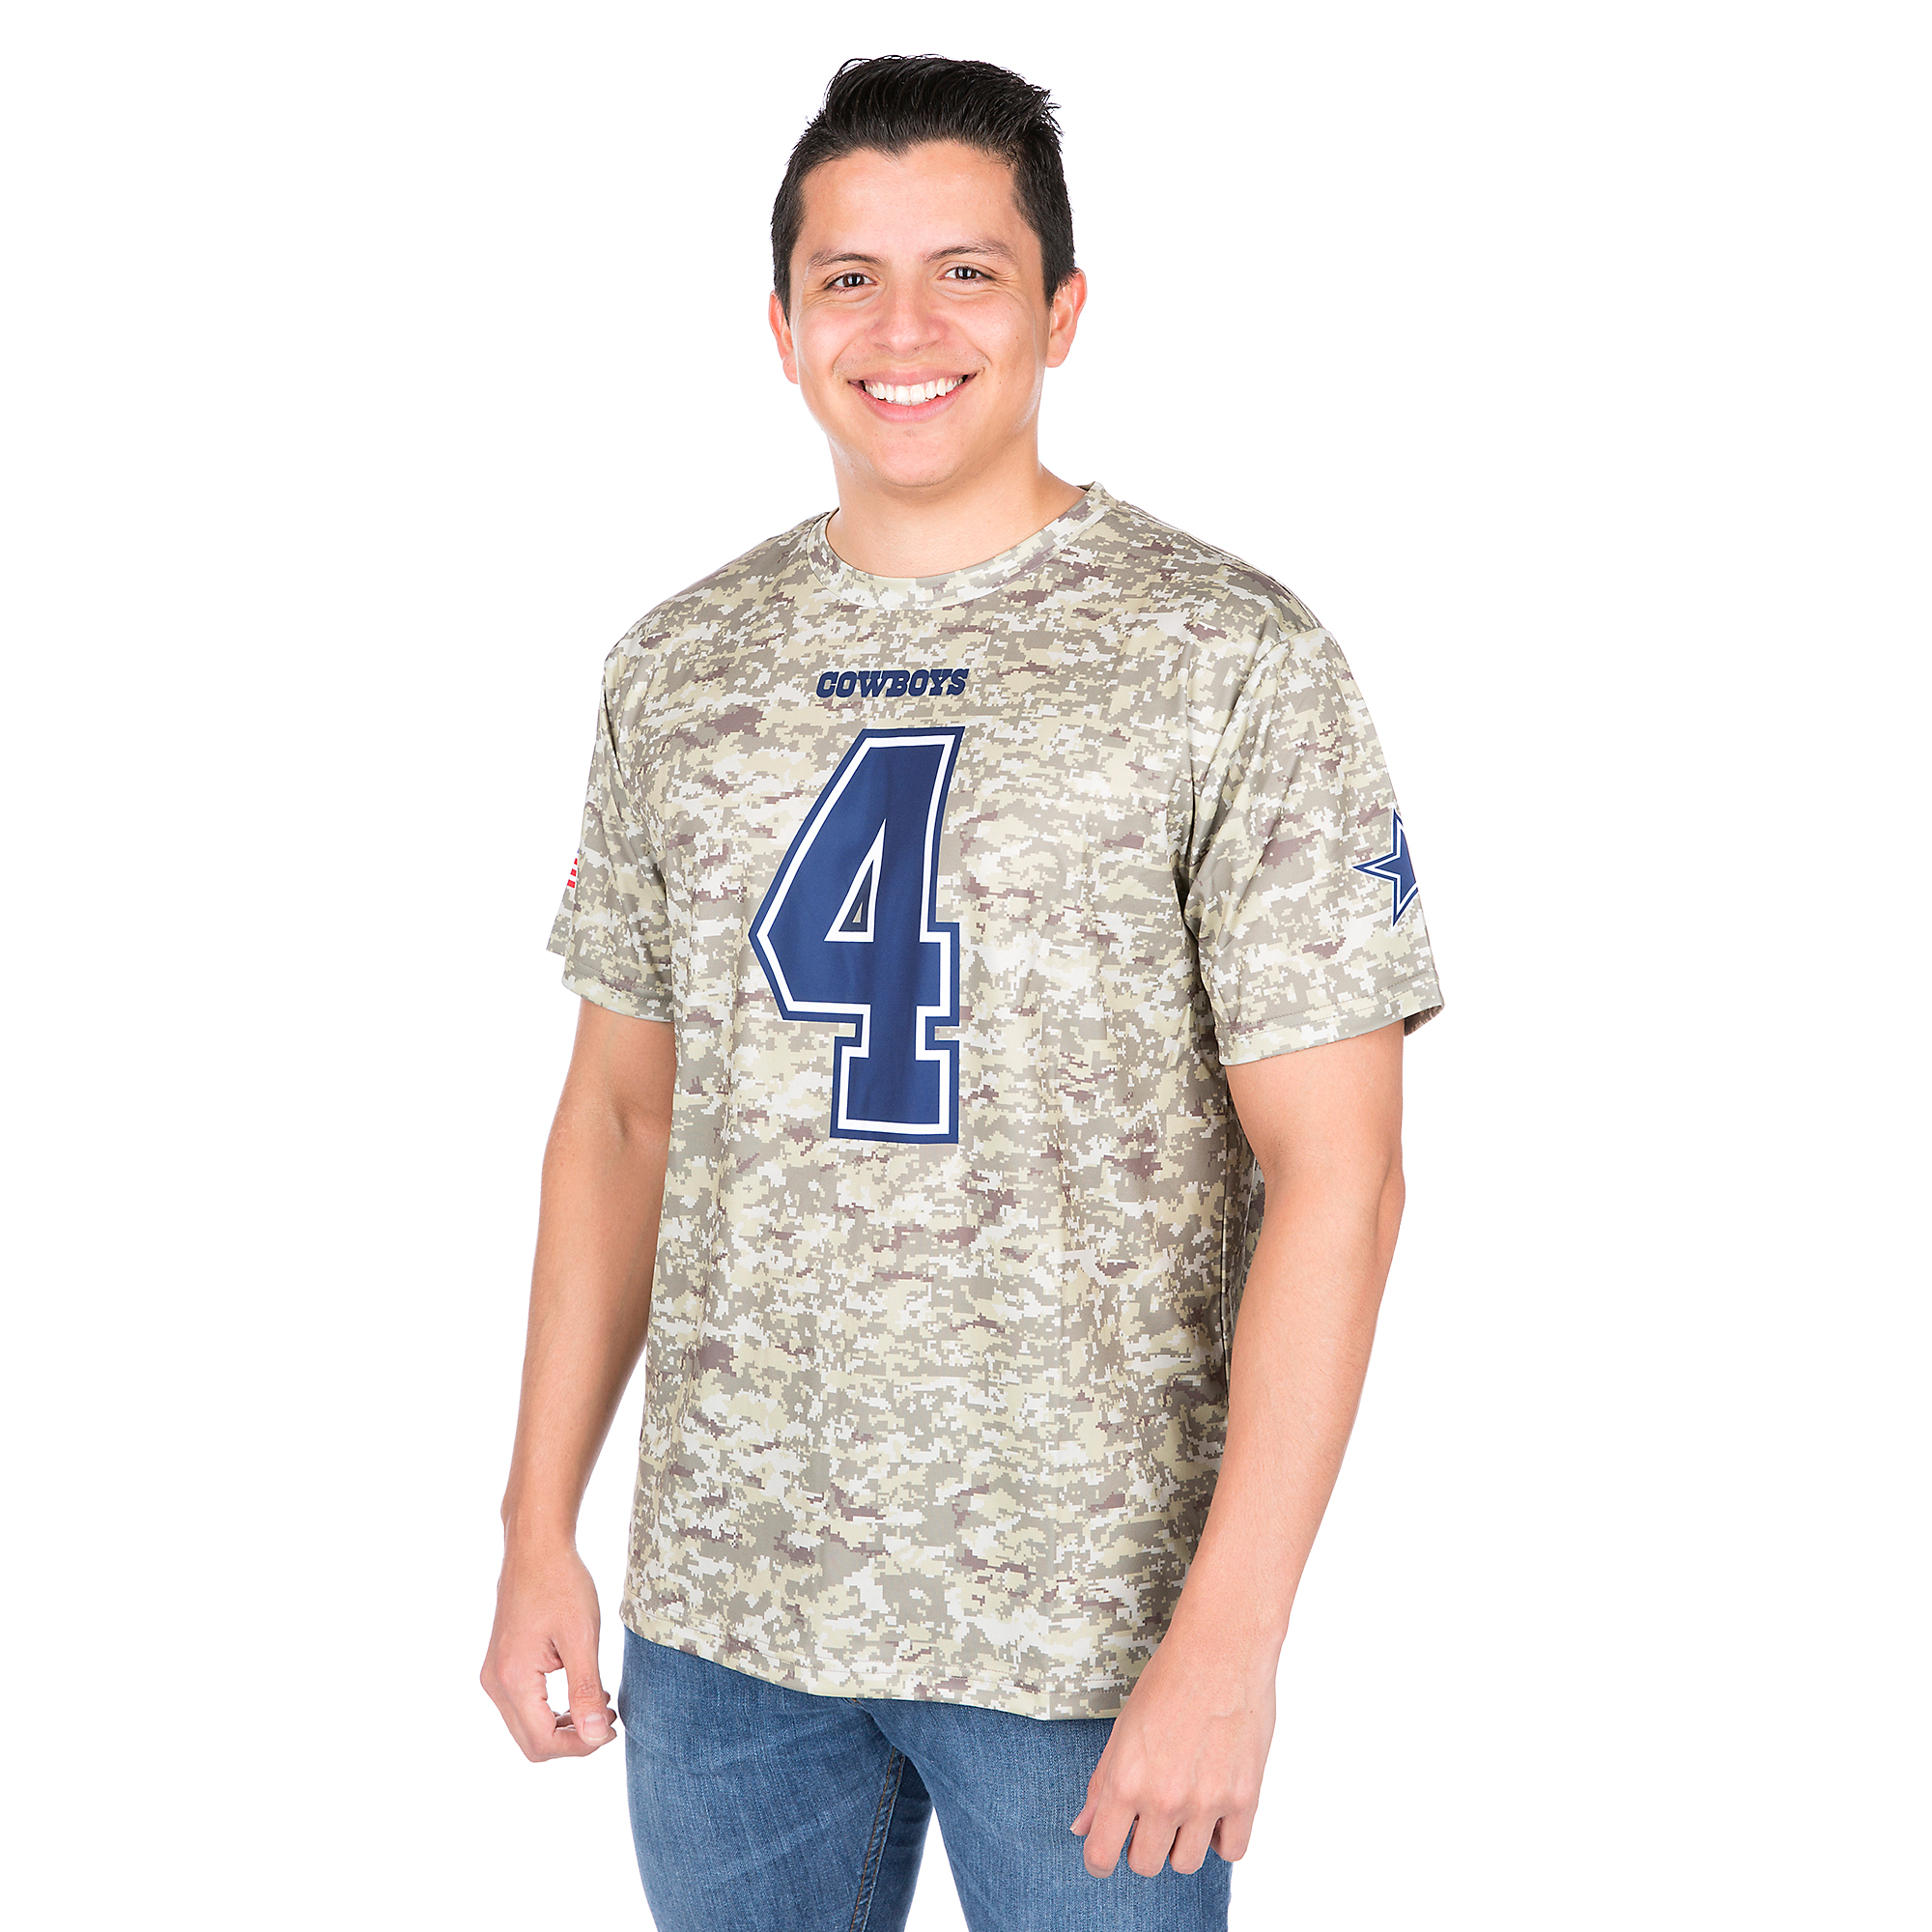 Dallas Cowboys Dak Prescott Windsor Tee